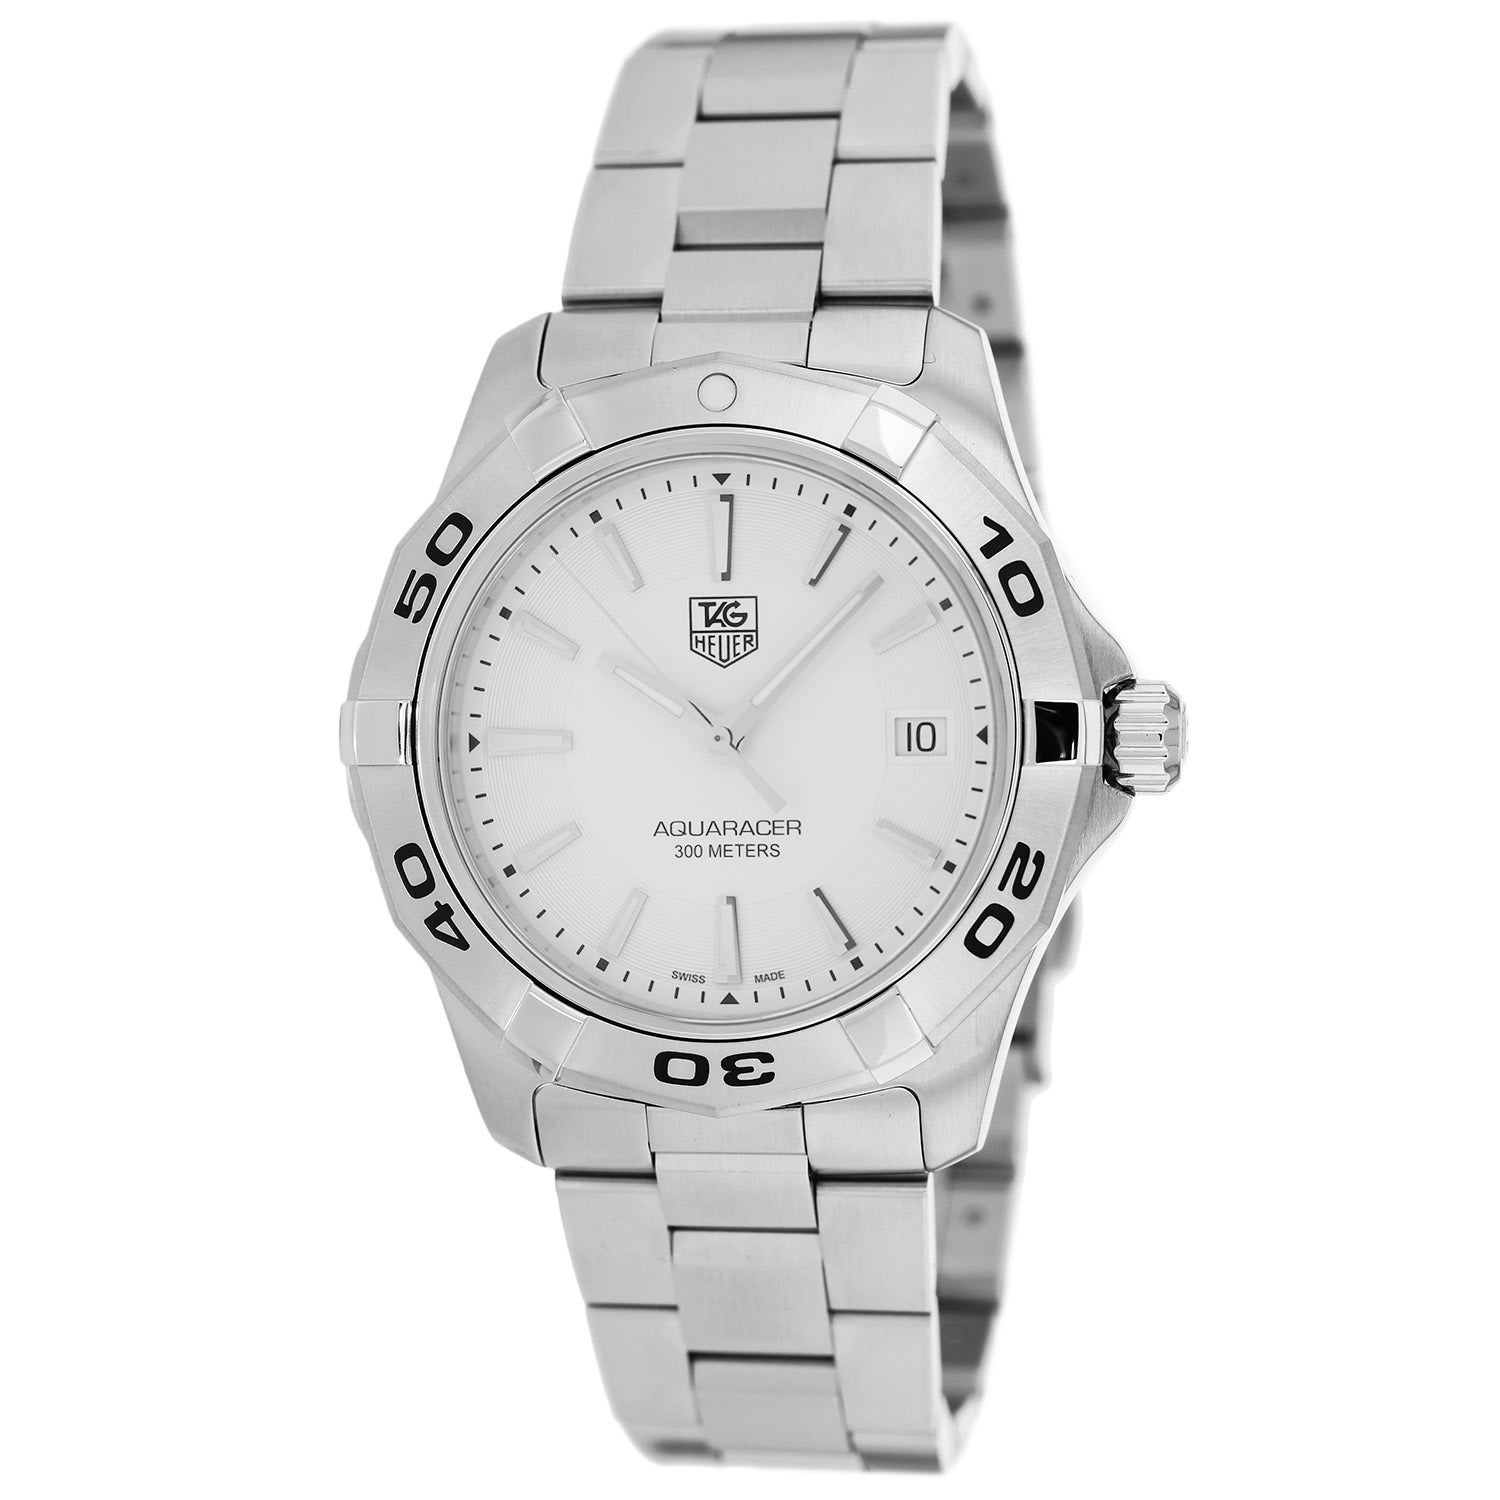 076e5c9d0ad Tag Heuer Watches | Shop our Best Jewelry & Watches Deals Online at  Overstock